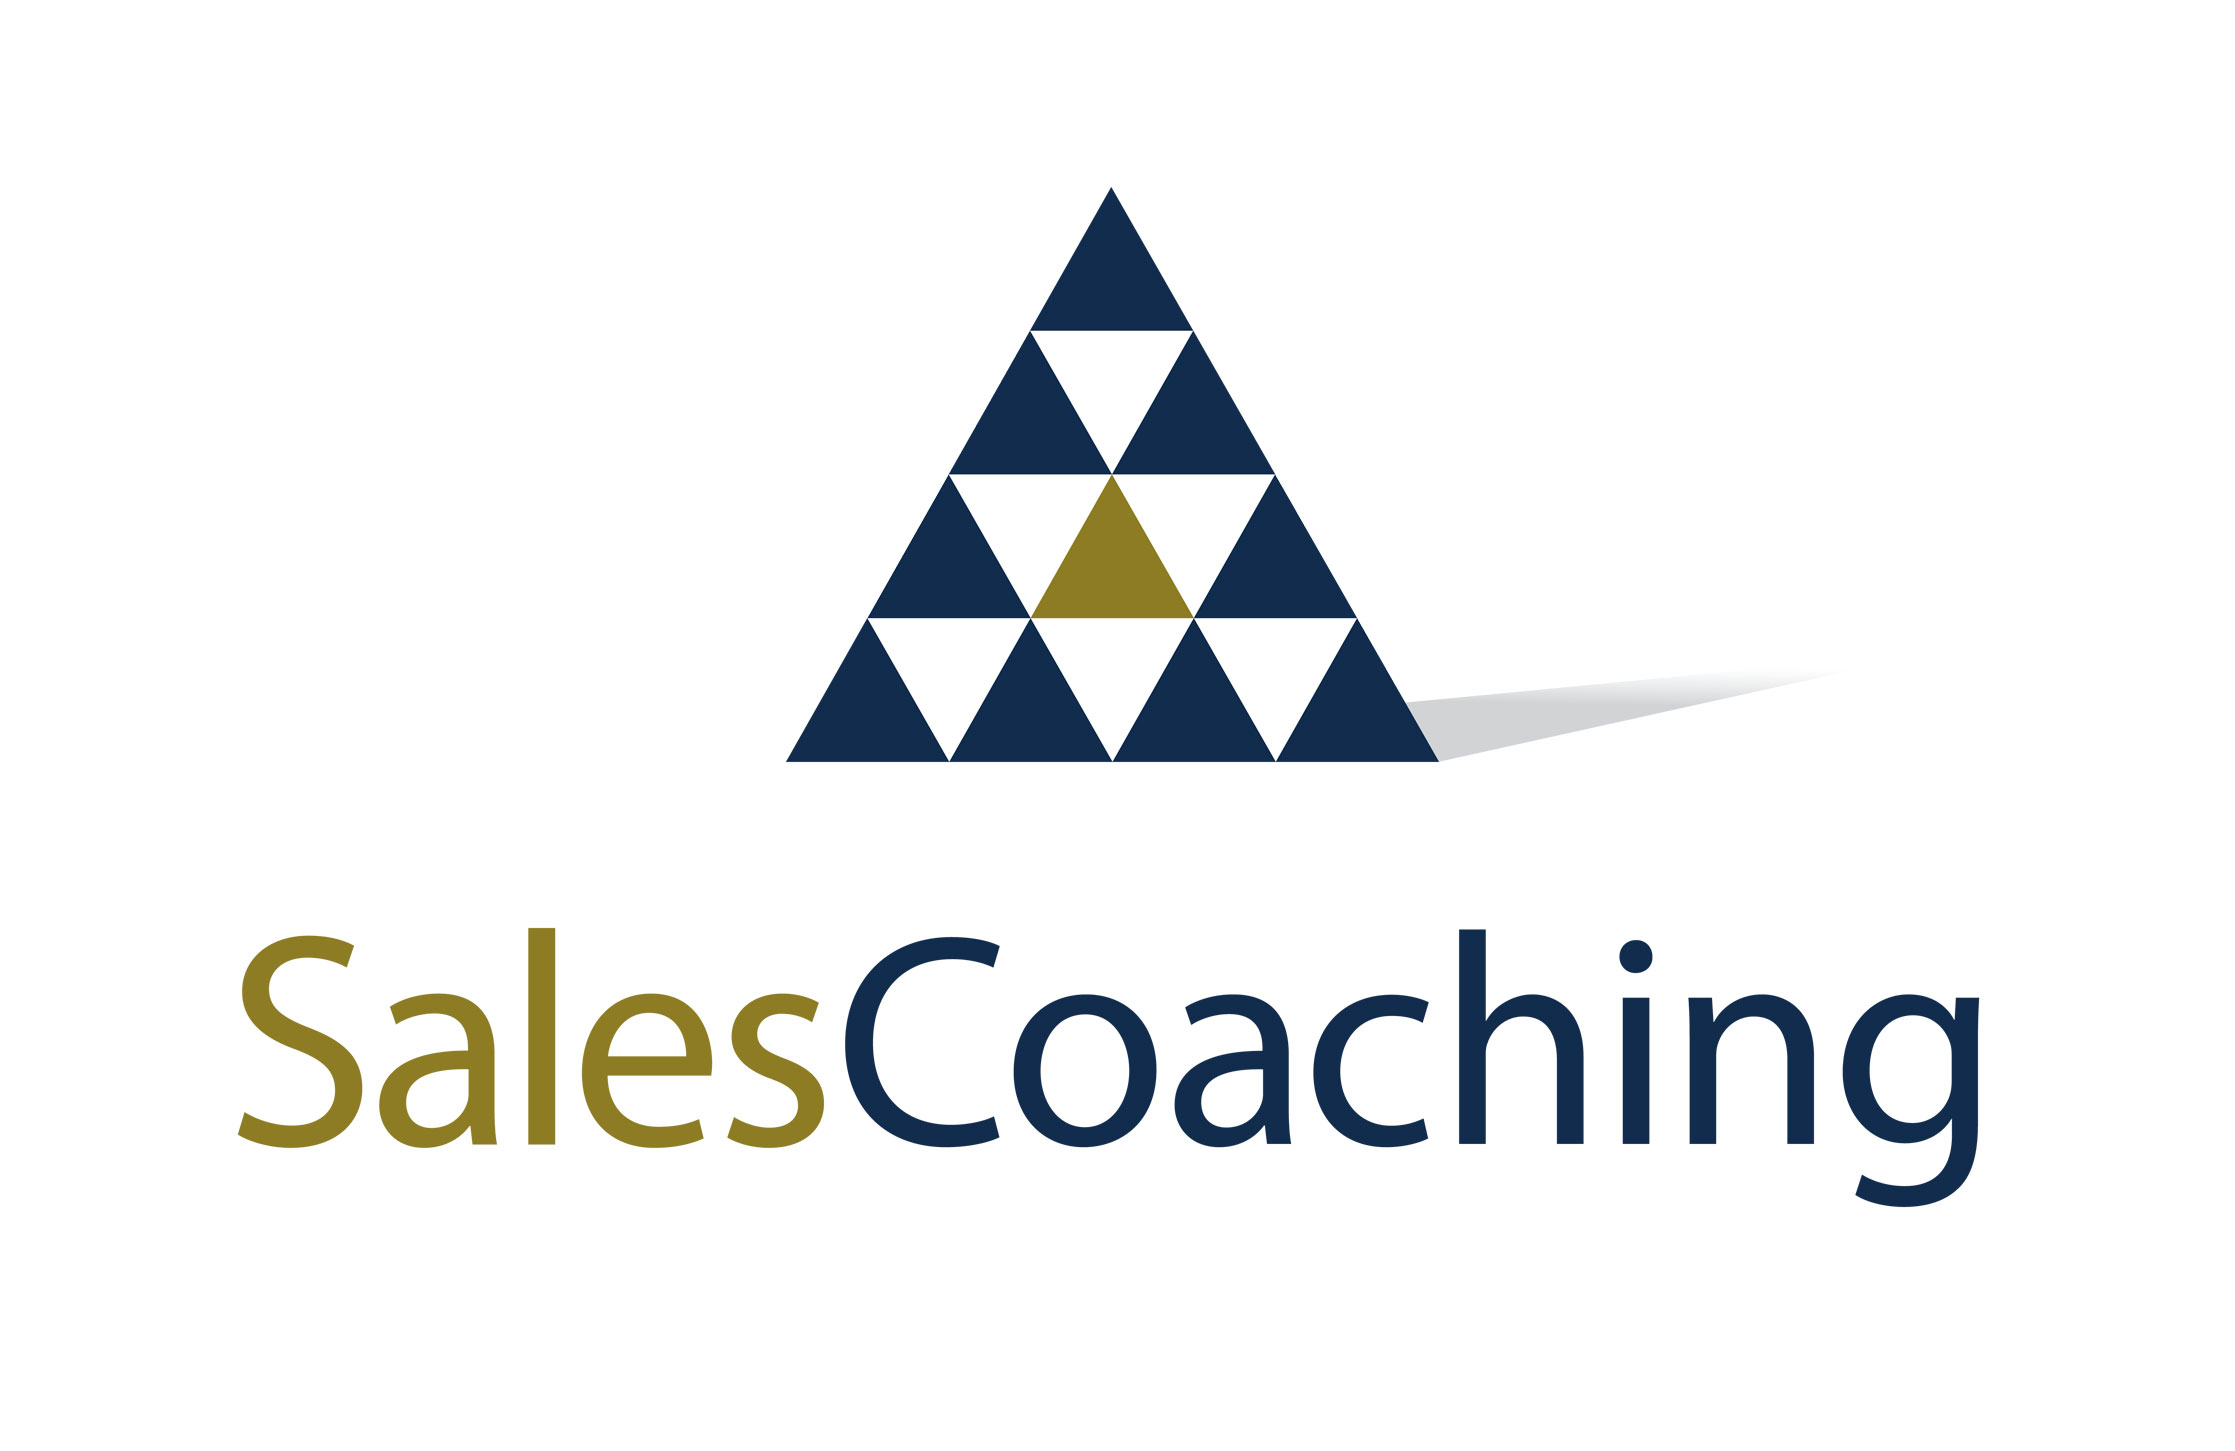 Sales Coaching Limited logo